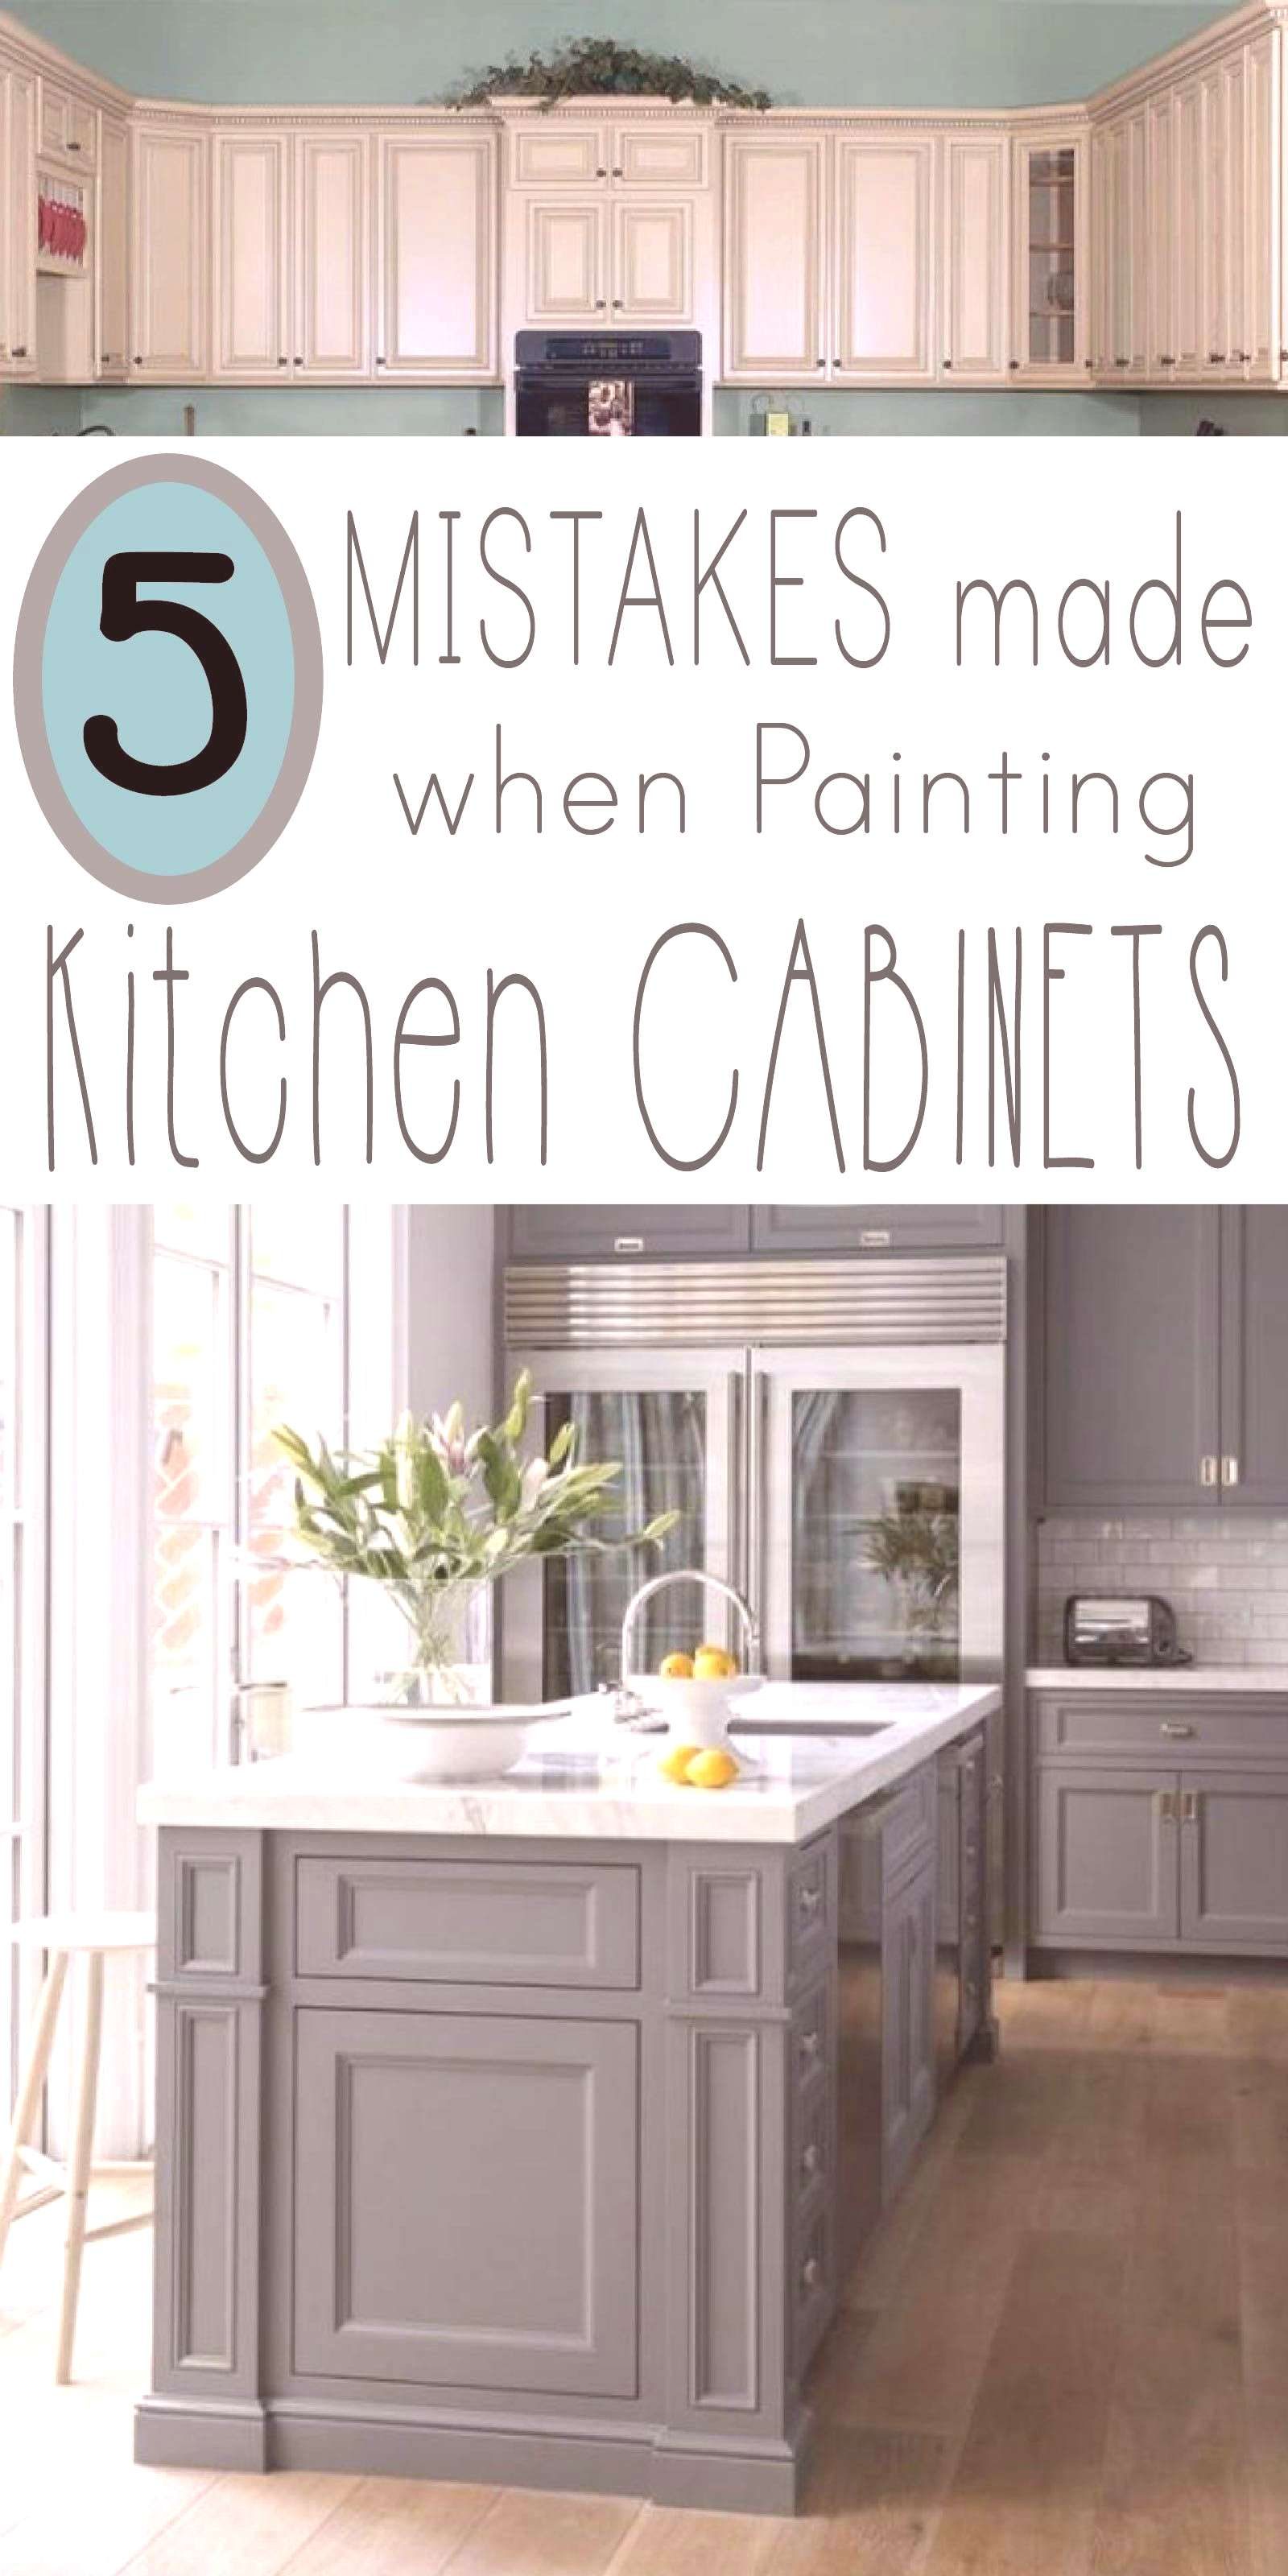 LEARN 5 Mistakes made when painting kitchen cabinets, so your makeover project is professional look